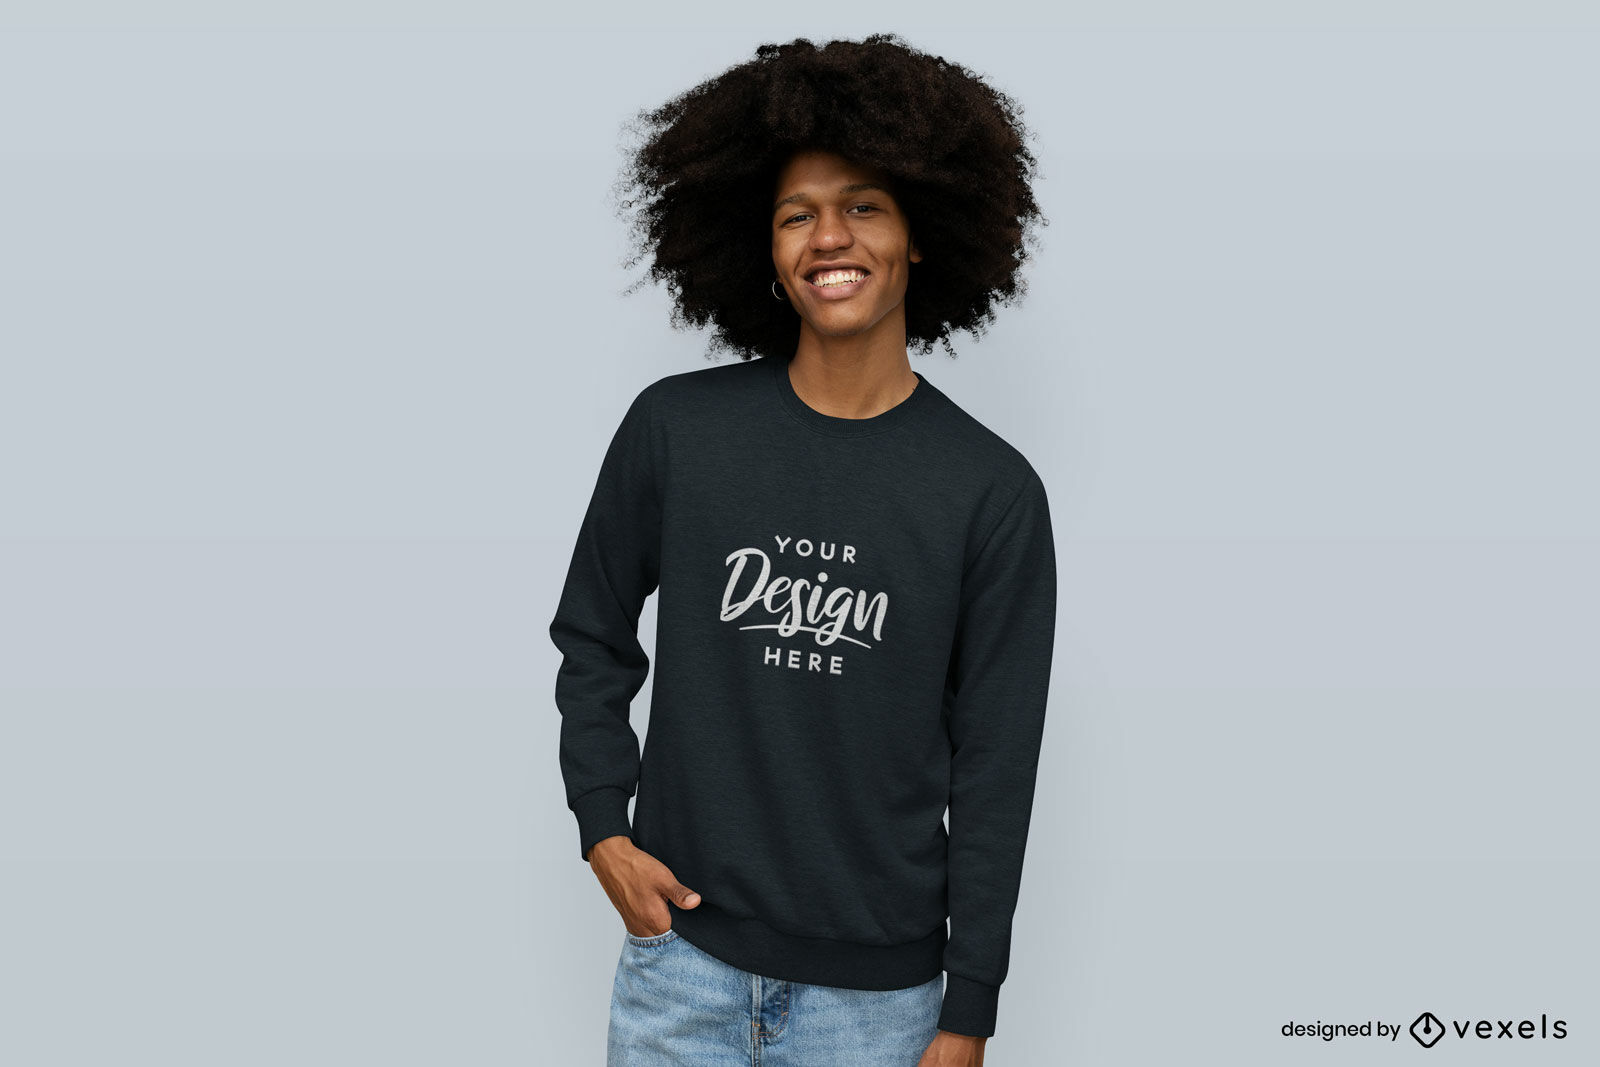 Smiling man in solid background sweater mockup